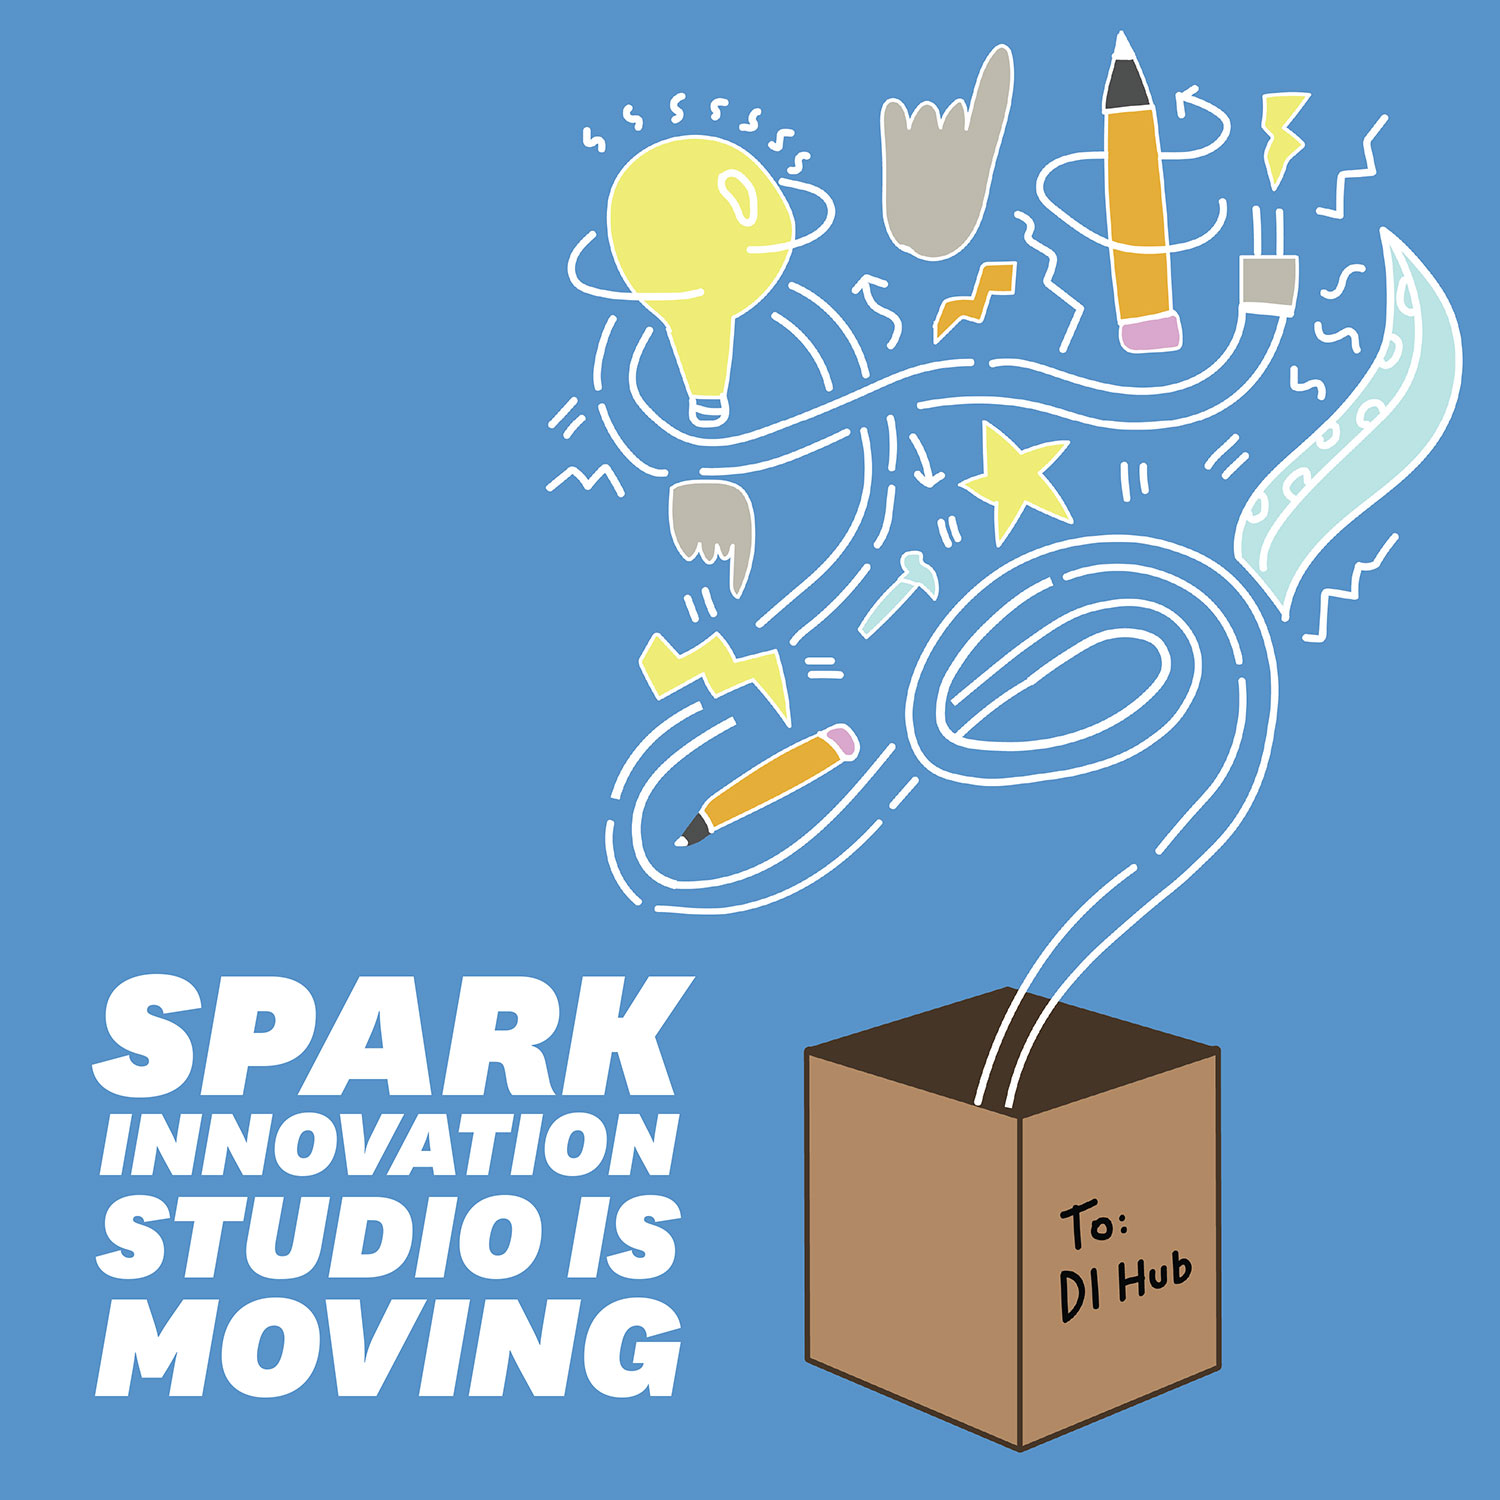 Spark is moving to the DI Hub and will reopen this fall as SparkLab, a makerspace under DI